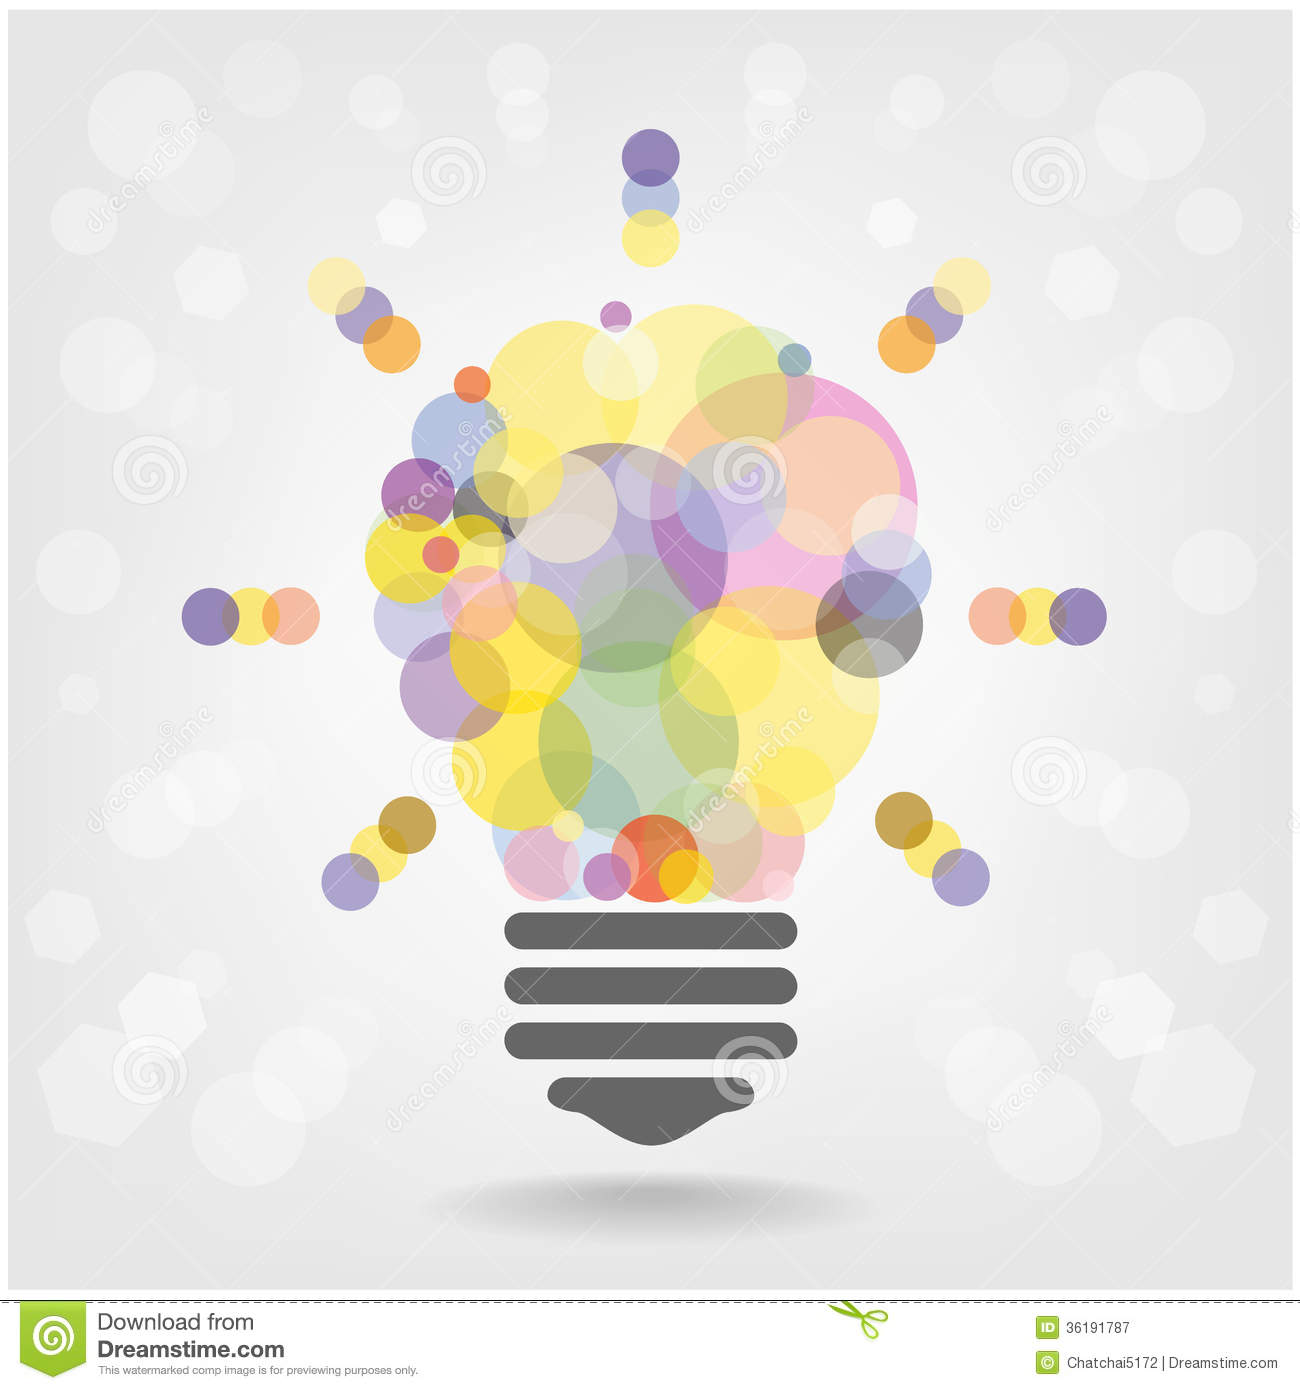 Displaying 16u0026gt; Images For - Creative Poster Design Ideas...